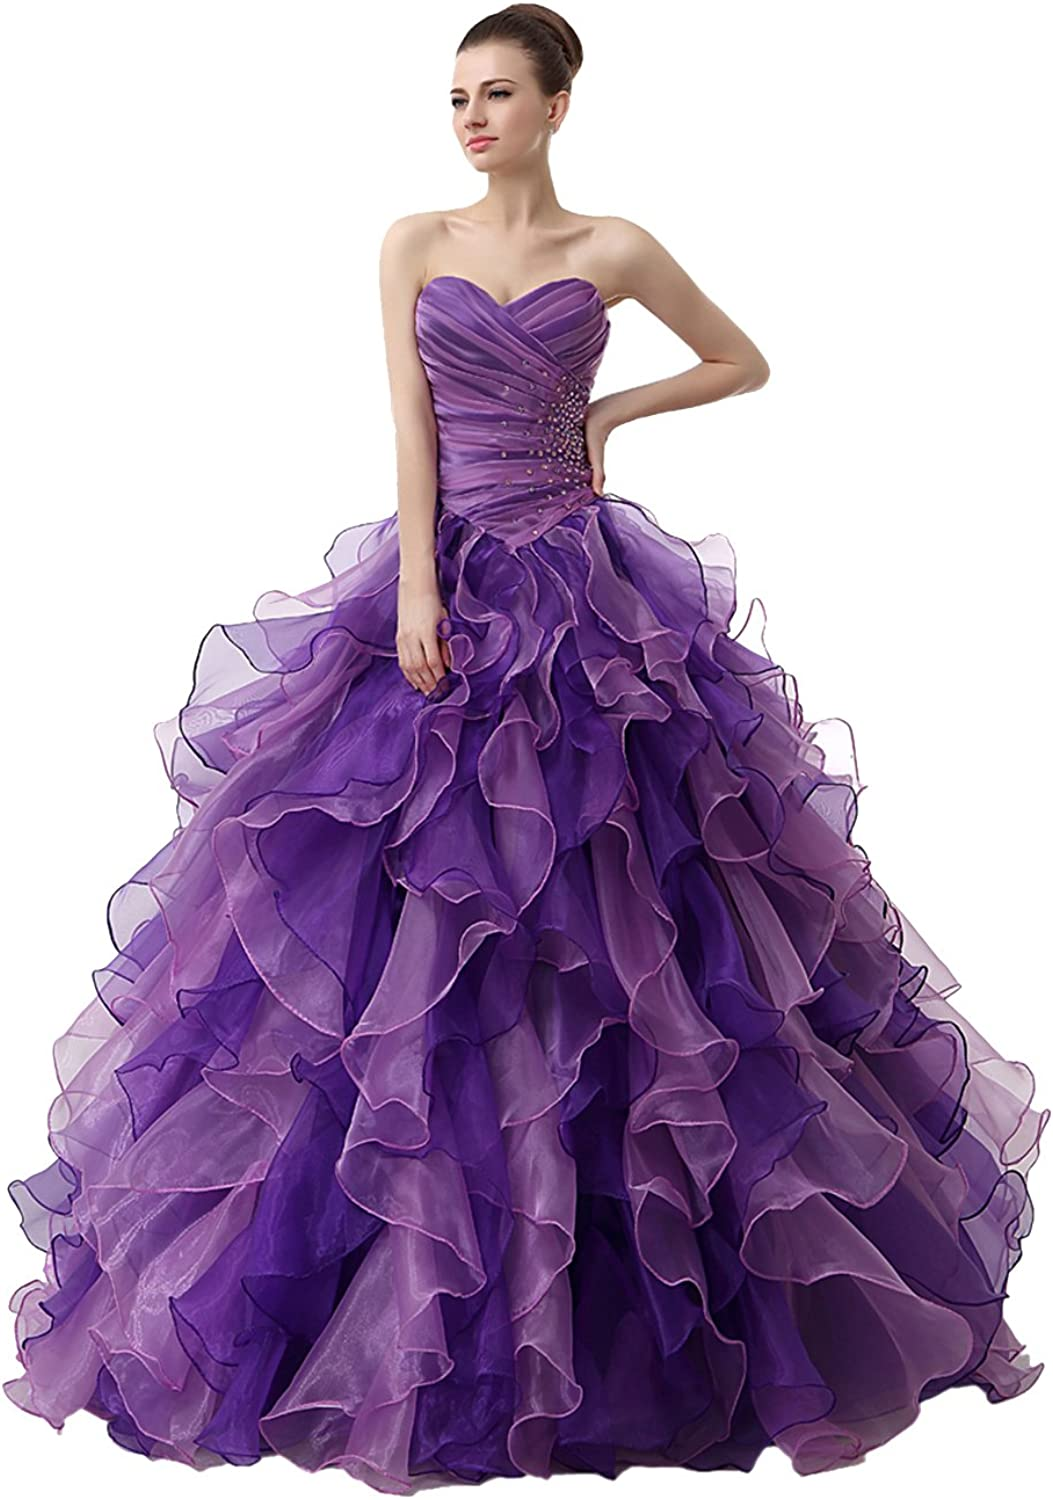 Engerla Women's Organza Rhinestones Beading FloorLength Laceup Prom Ball Gown